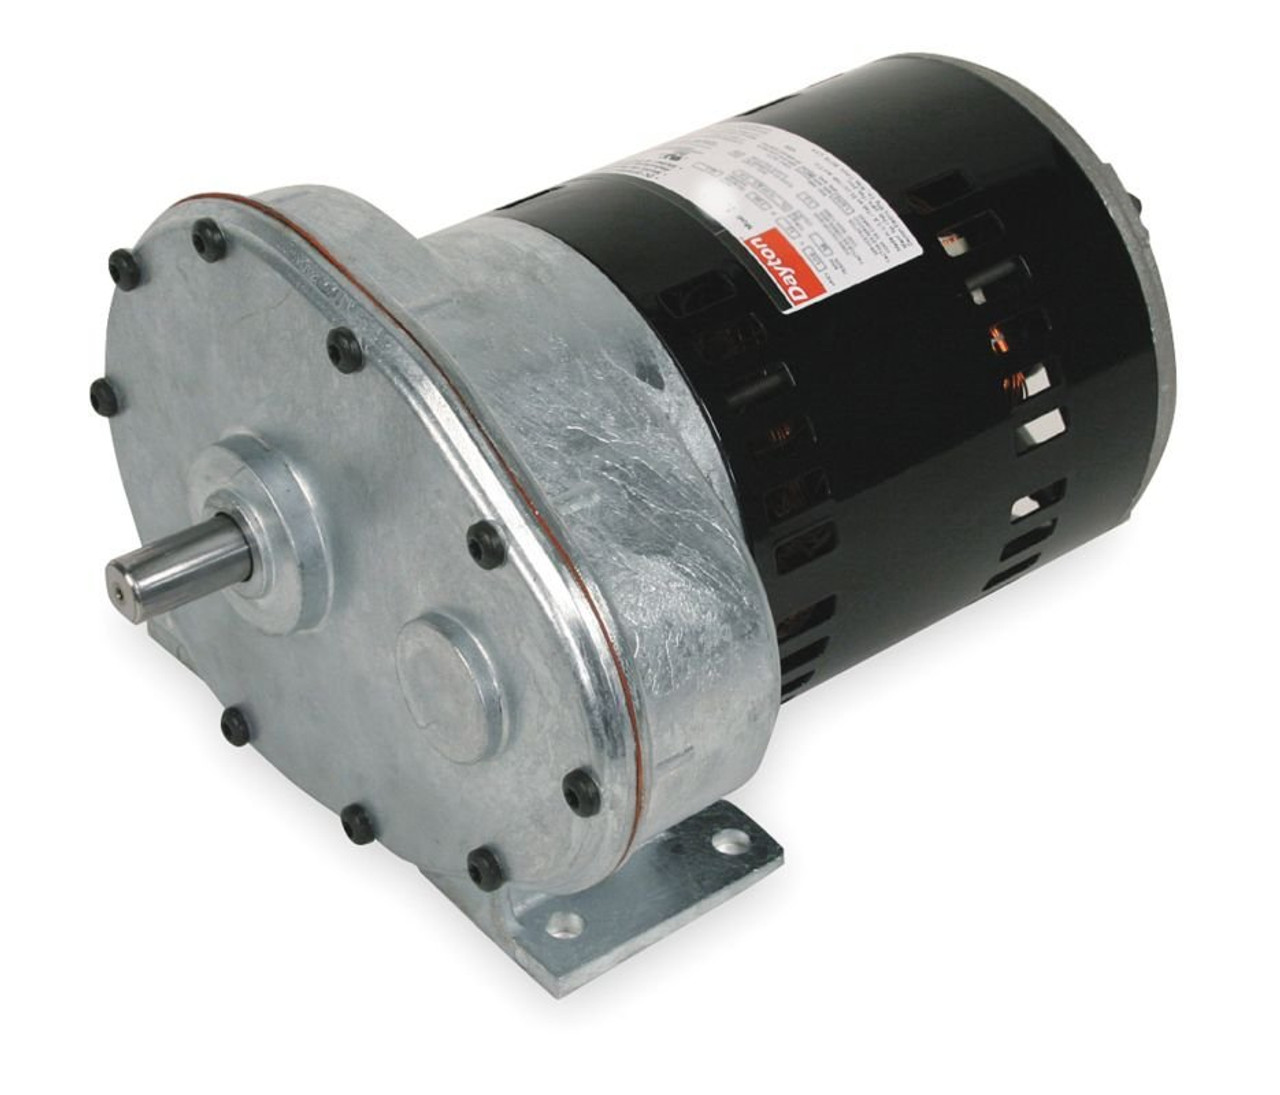 Dayton Model 1lpu5 Gear Motor 31 Rpm 1  2 Hp 115 Volts  2z794